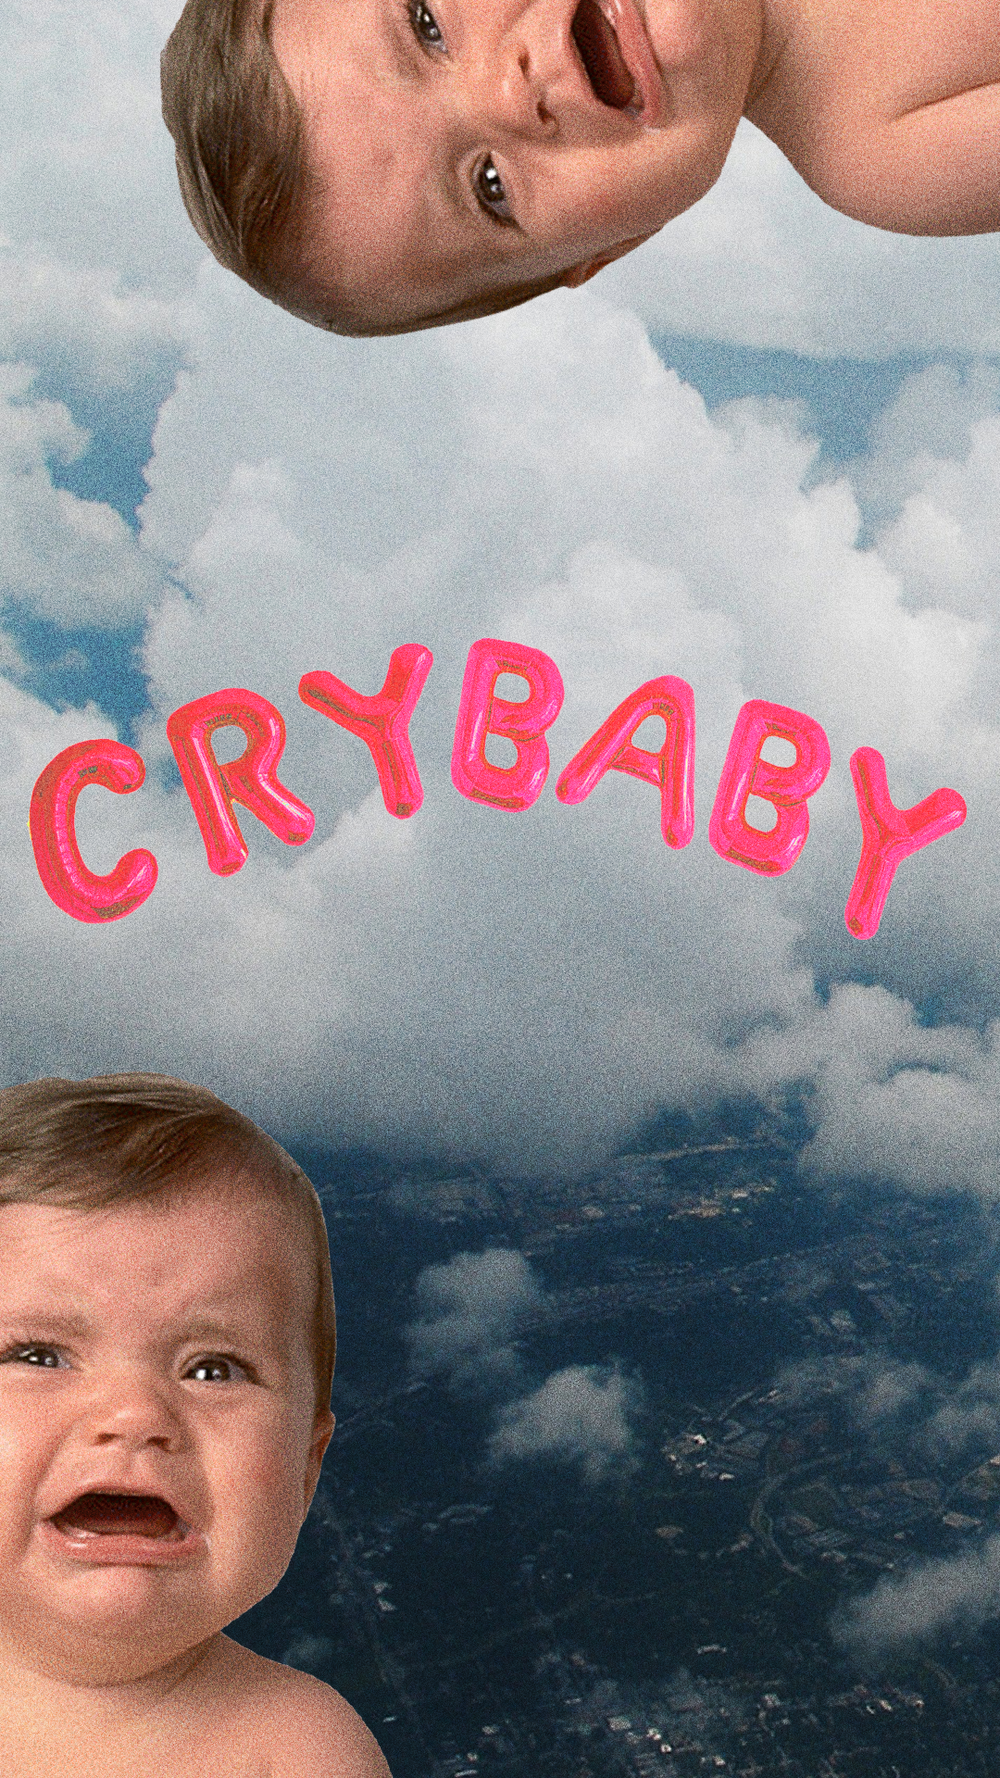 CRYBABY2.png